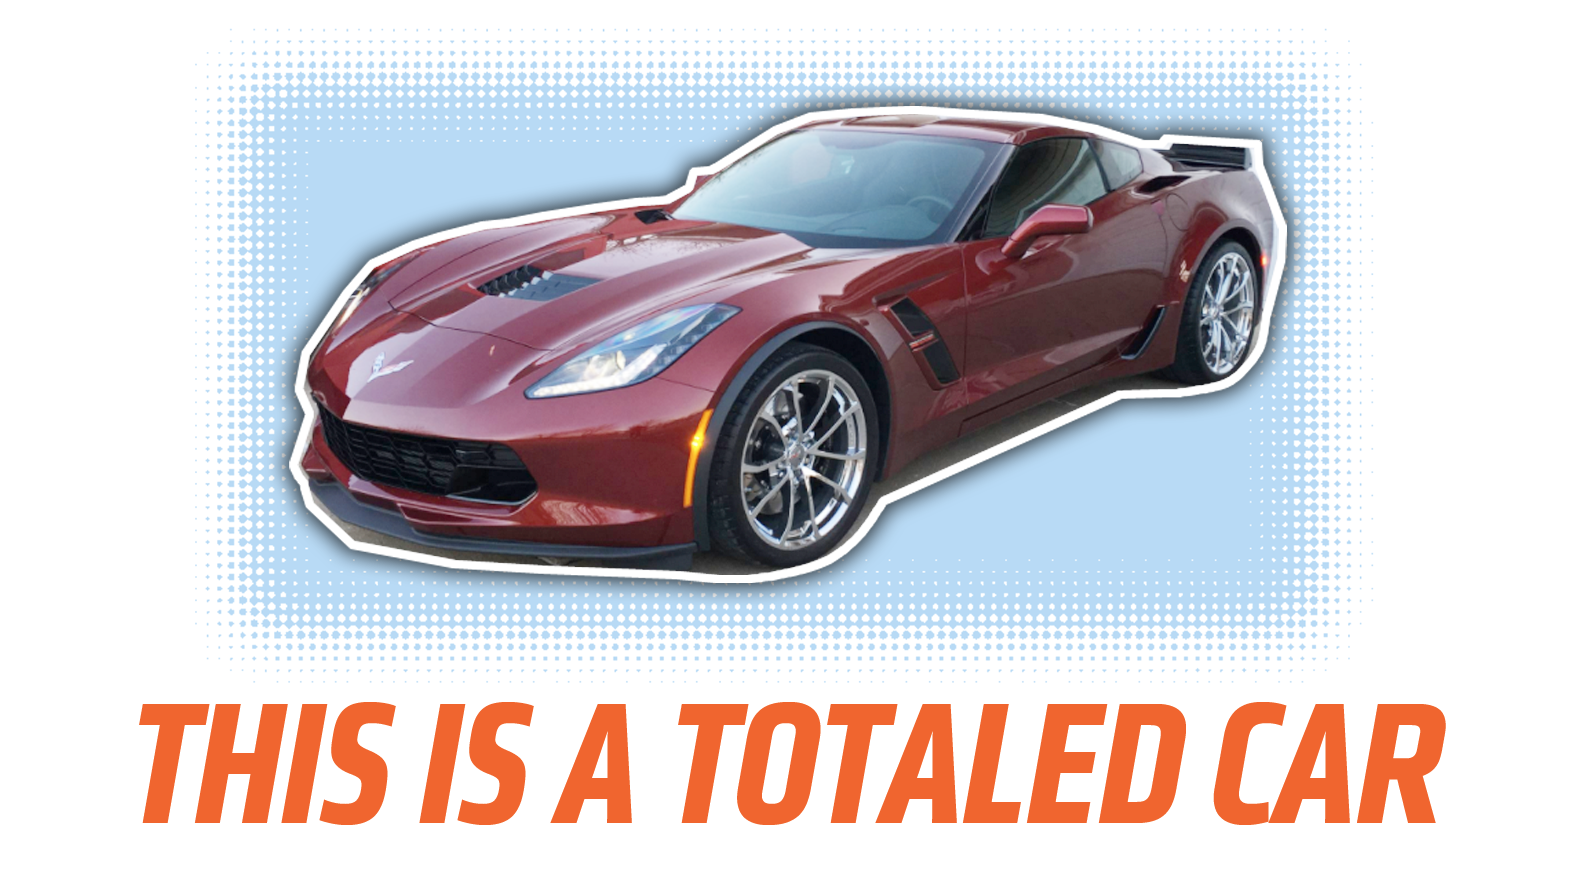 Here's How A Corvette Was Totaled Because Of One Inch Of Damage